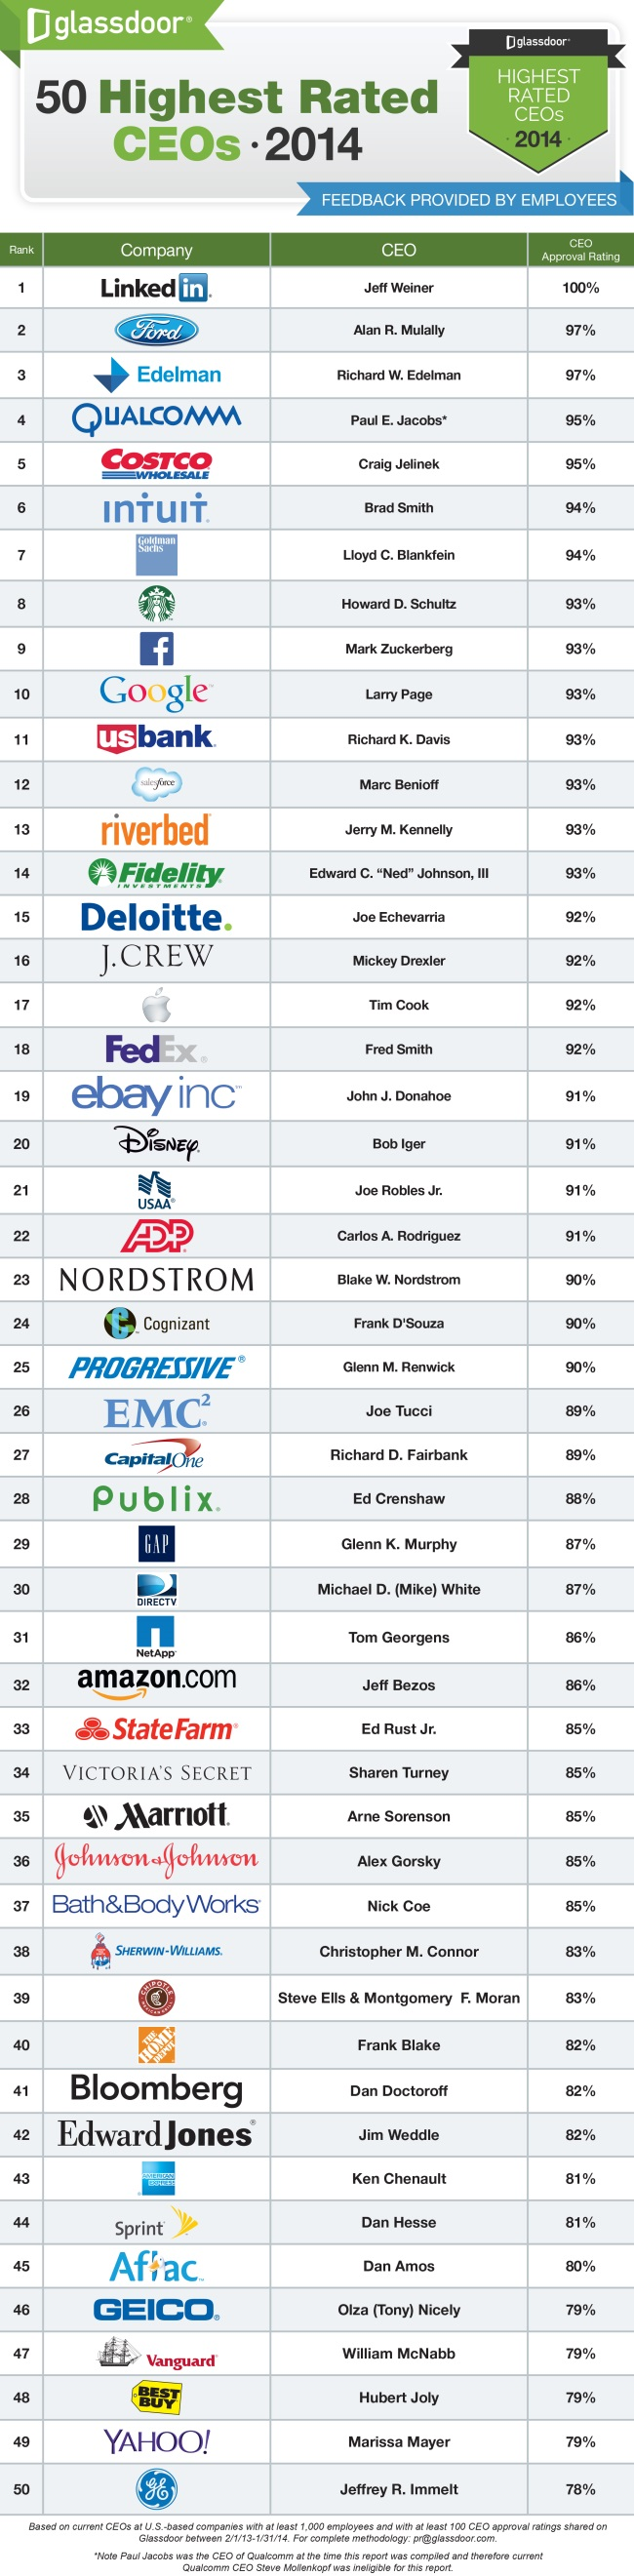 Top 50 Highest Rated CEOs from Glassdoor.